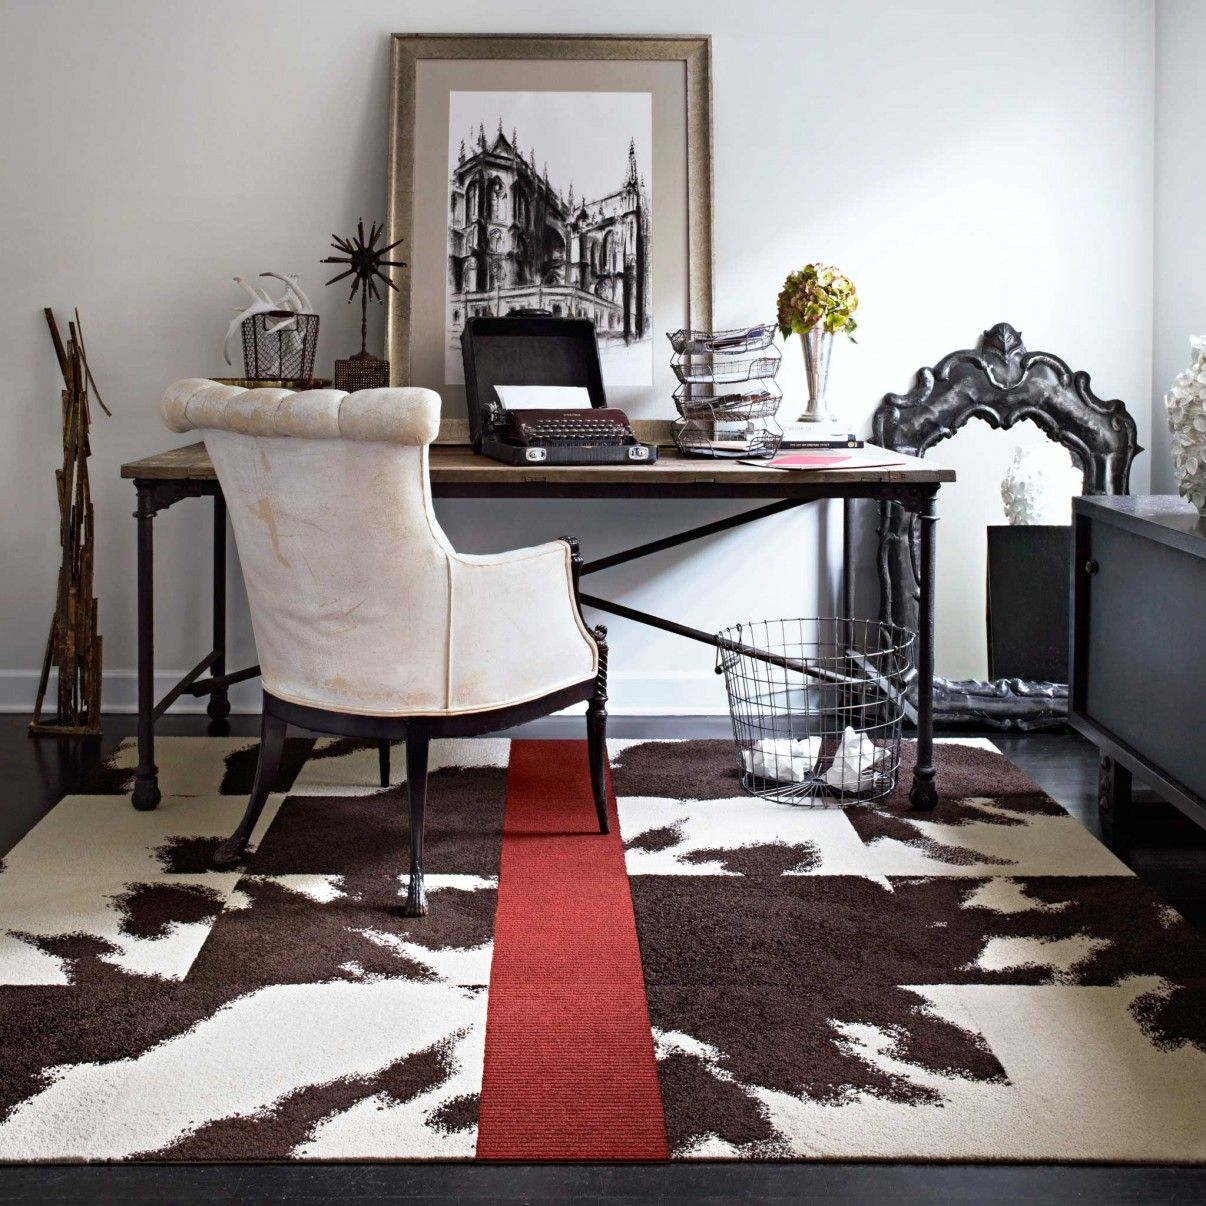 Flor mod cow brown installation layout and images pinterest buy mod cow brown carpet tile by flor to go under our bed minus the red stripe dailygadgetfo Images